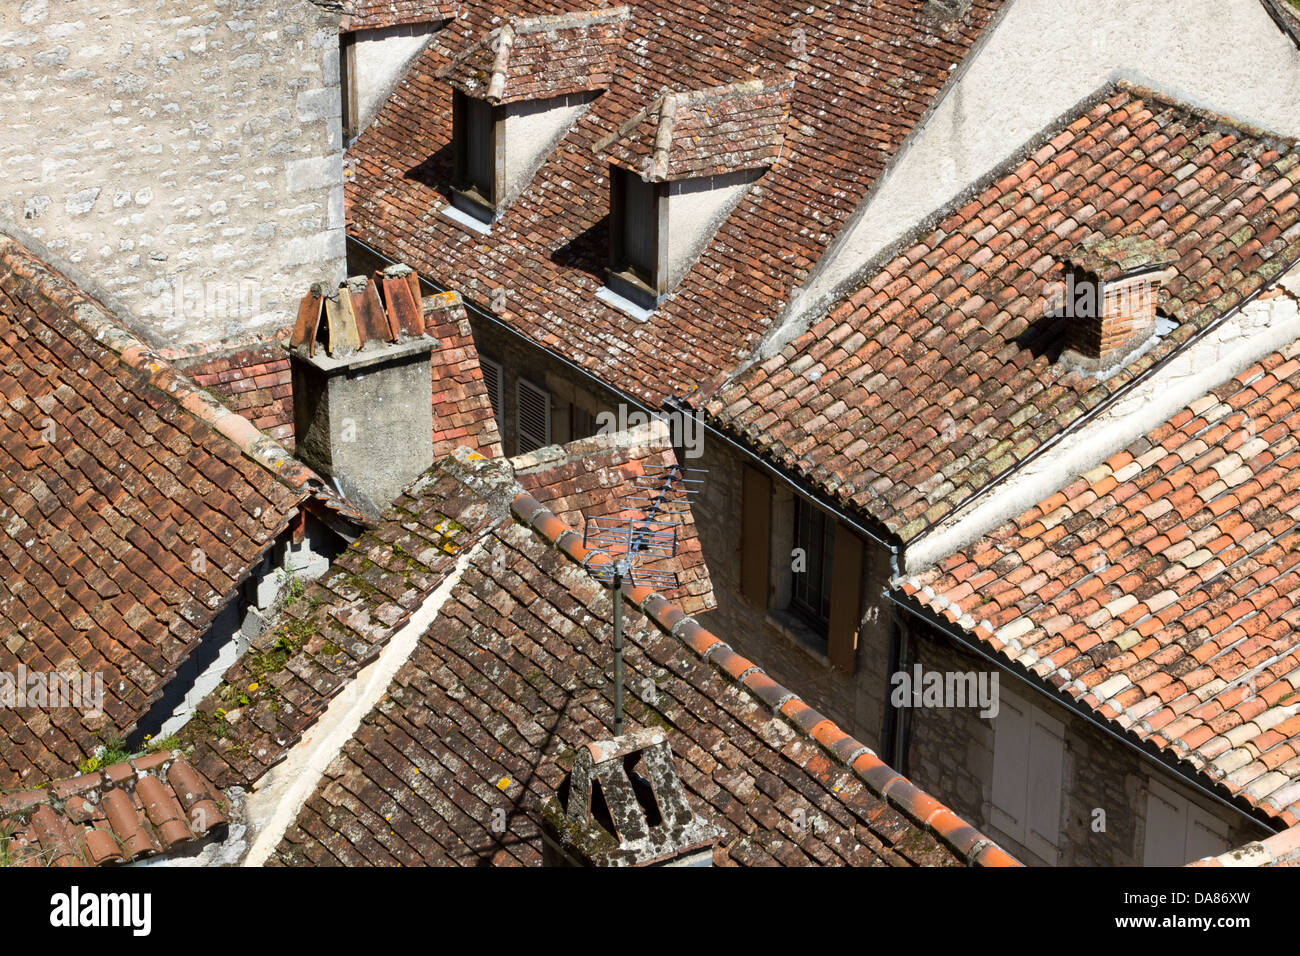 Red tile and stone roofs and chimneys in Rocamadour, France - Stock Image